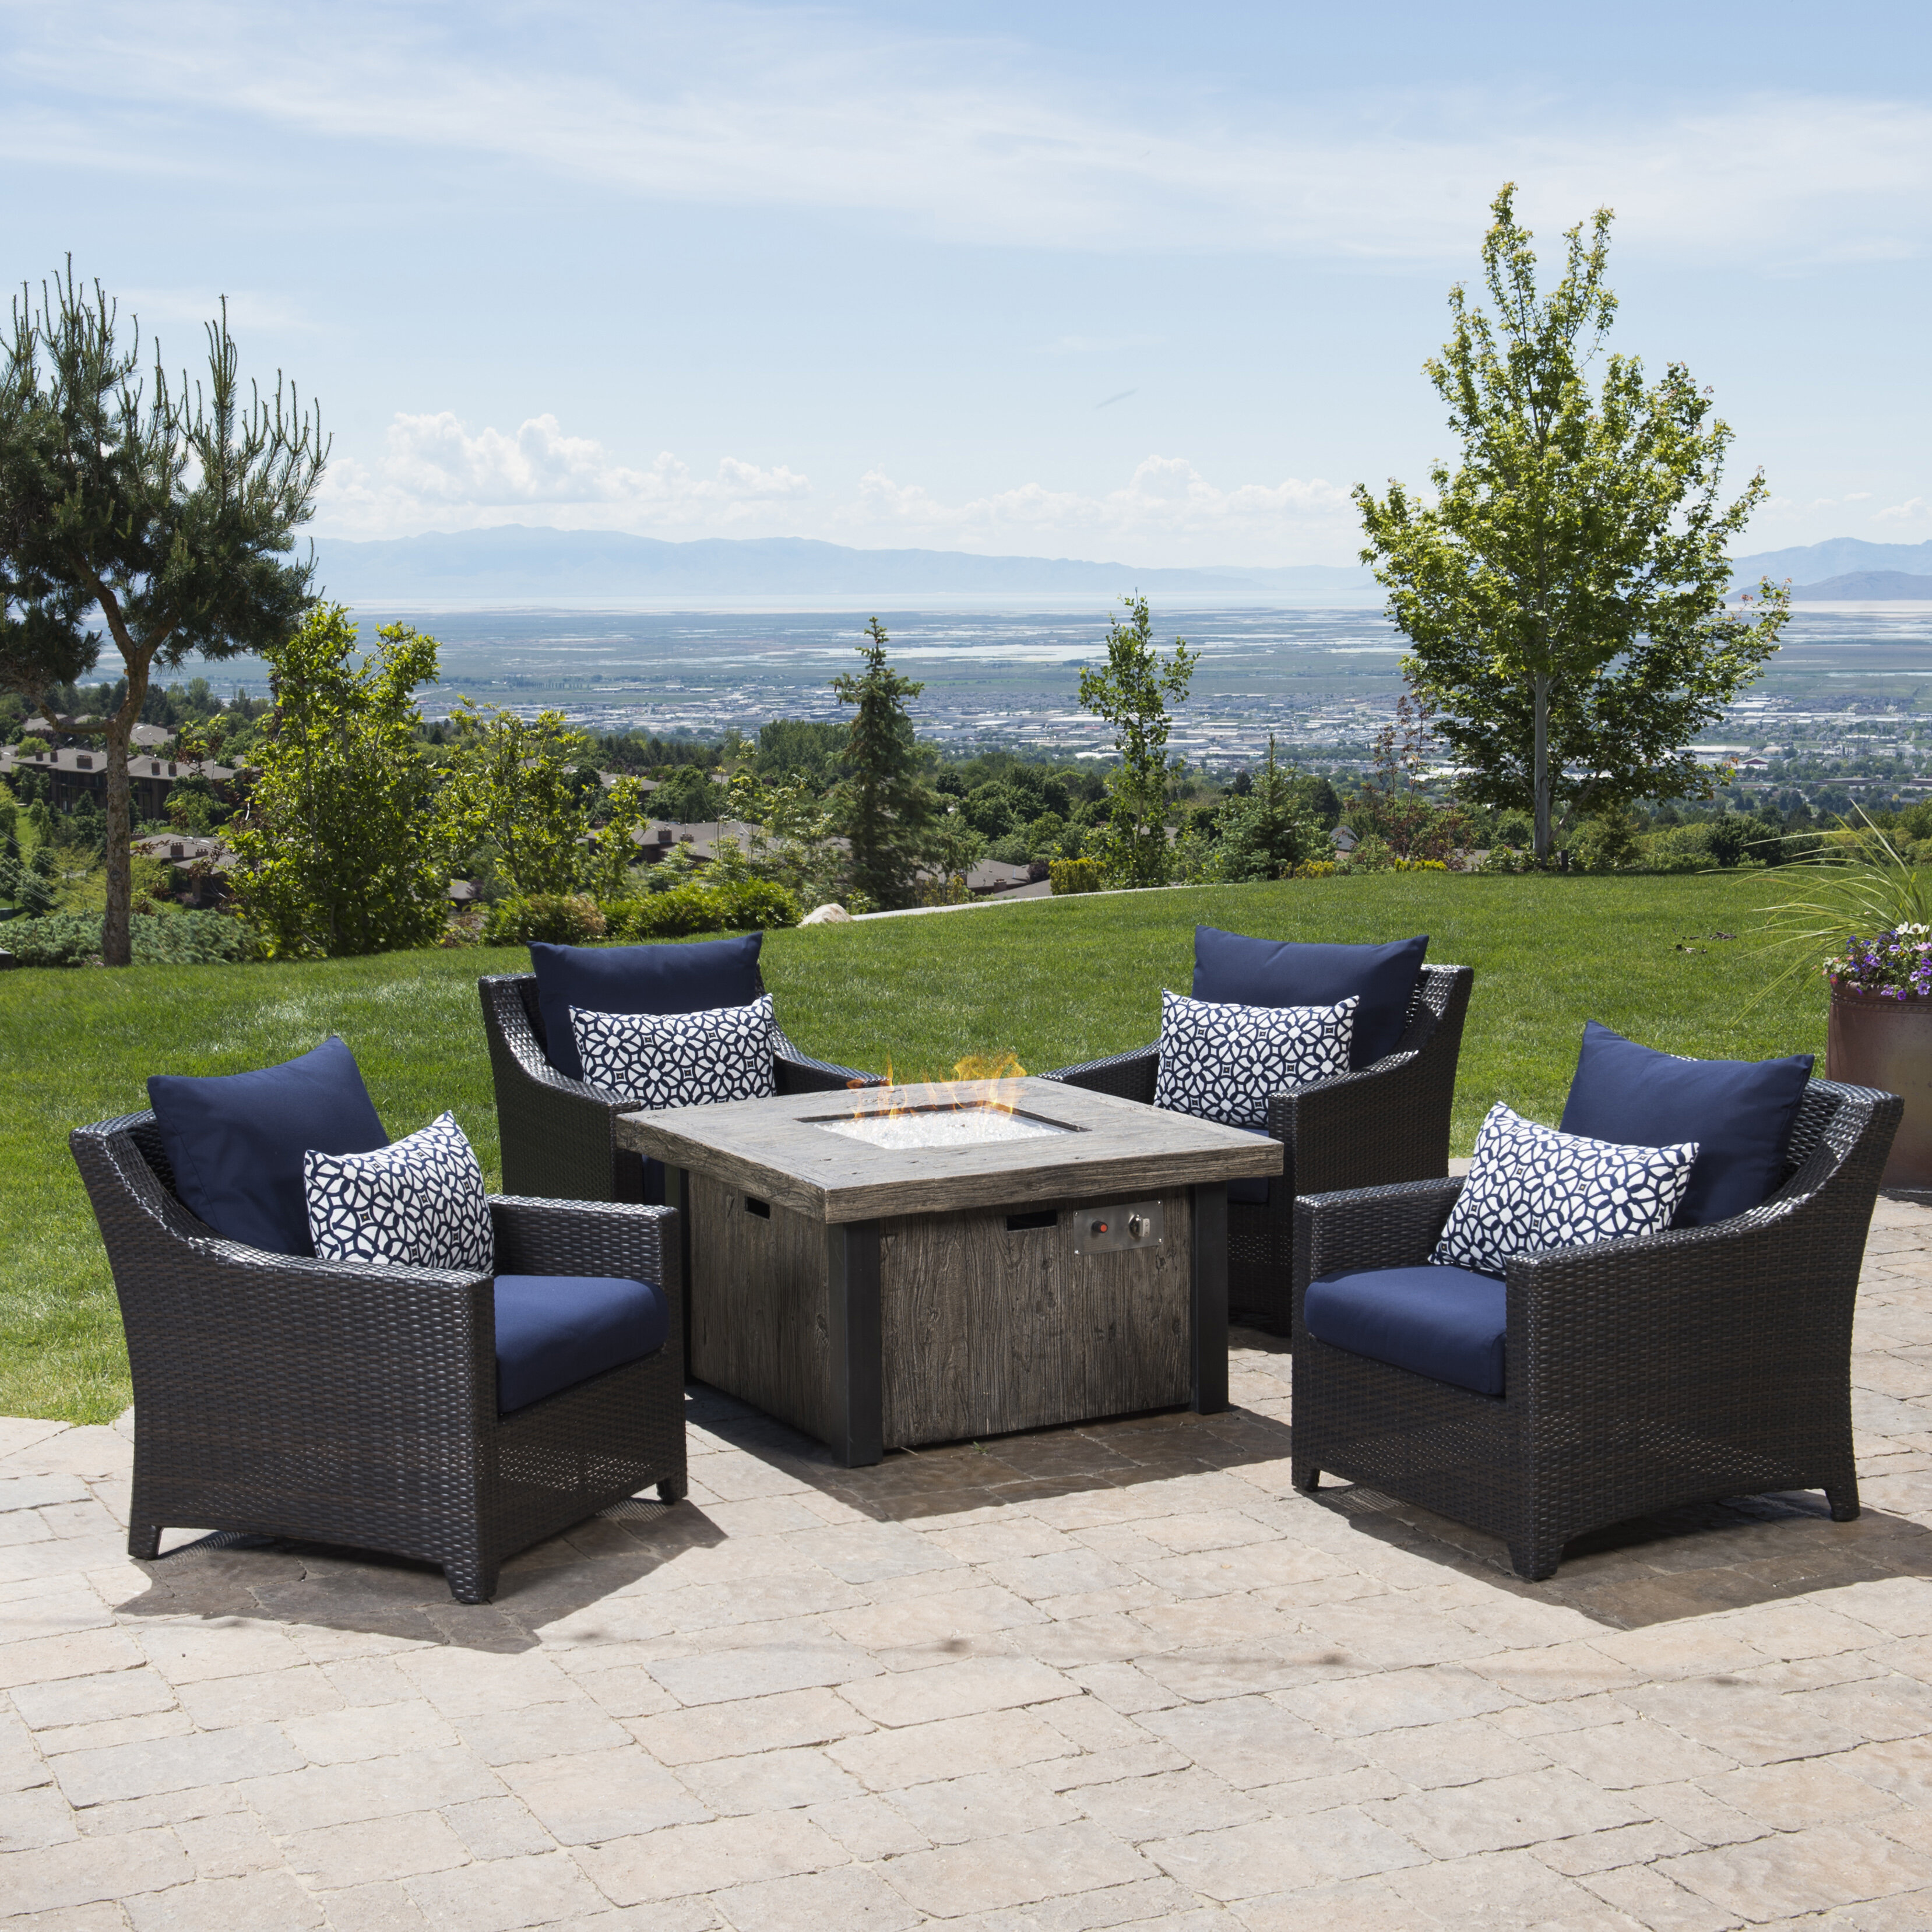 Delicieux Three Posts Northridge 5 Piece Rattan Sunbrella Conversation Set With  Cushions U0026 Reviews | Wayfair